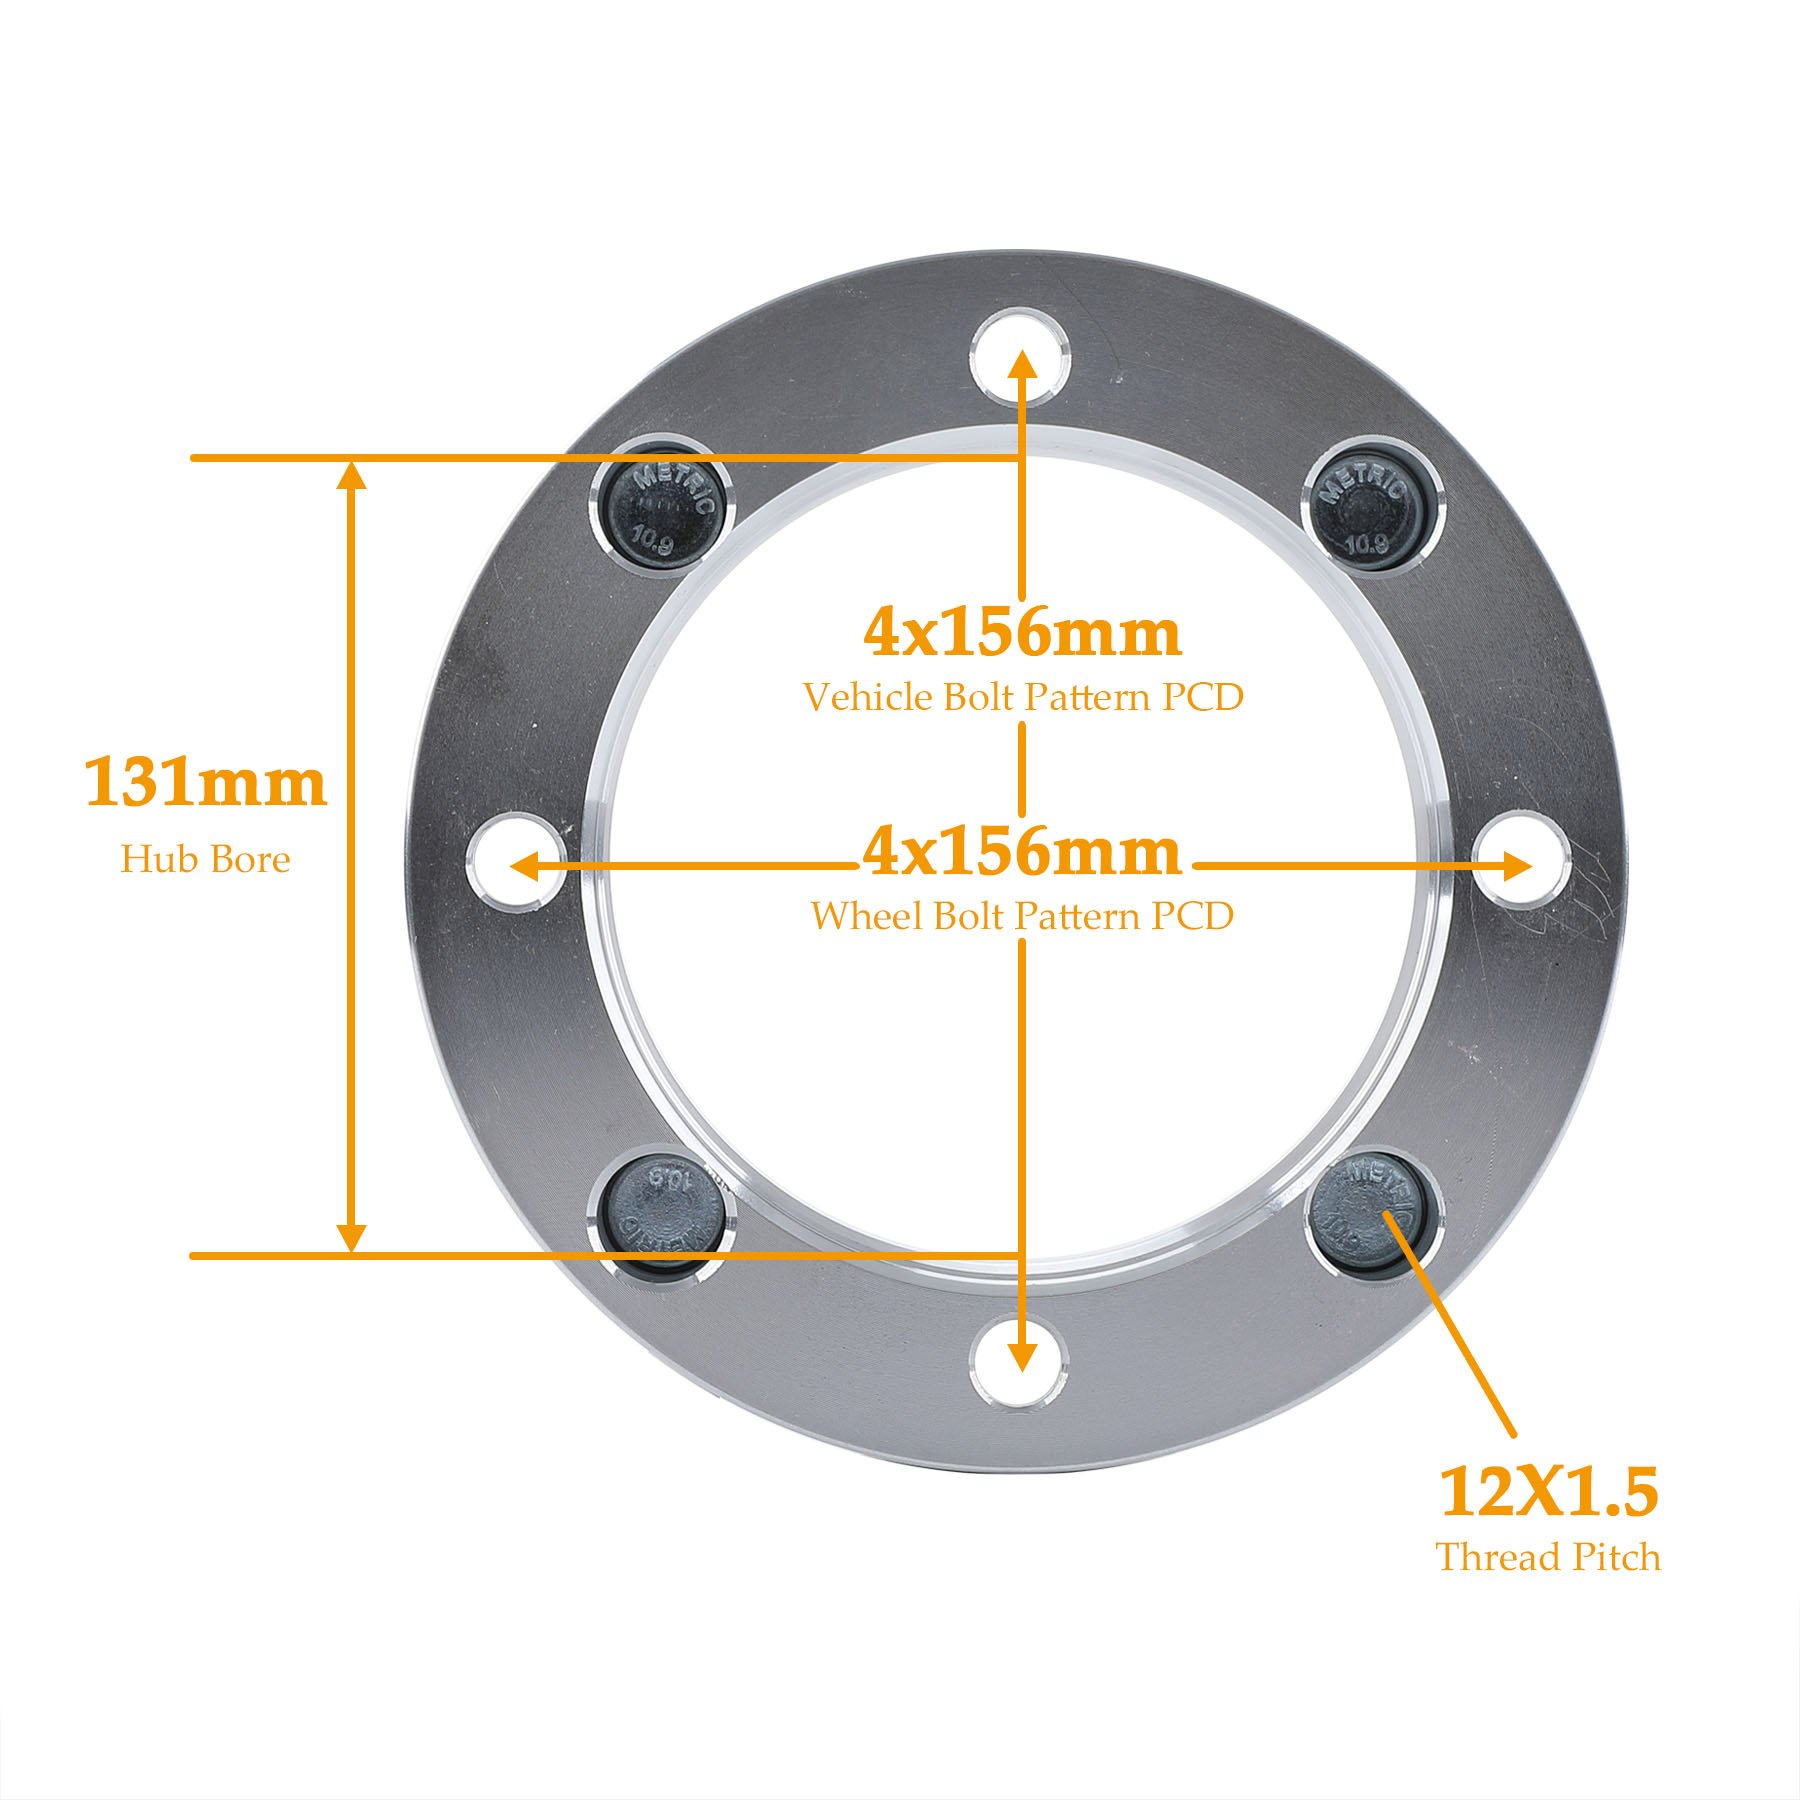 4x156 ATV UTV Wheel Spacers with 12x1.5 Studs for 2014+ Polaris RZR XP 1000, 2015+ Polaris RZR Trail 900, 2015+ Polaris RZR High Performance S 900, 2015+ Polaris RZR Trail 900 XC, 2013+ Polaris Ranger by OrionMotorTech (Image #1)